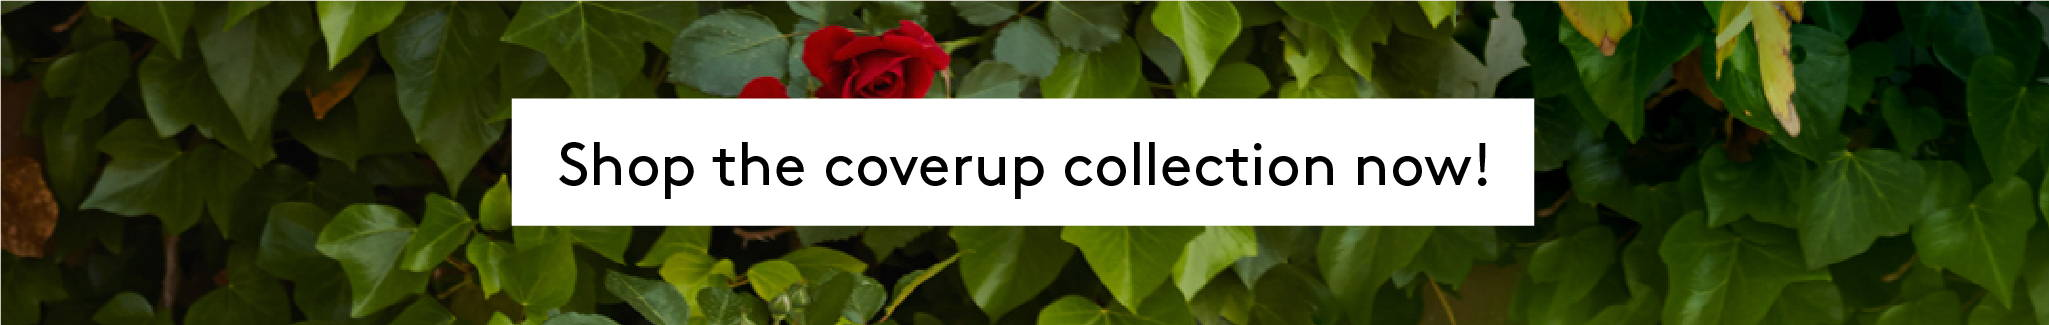 Shop the COVERUP collection now!